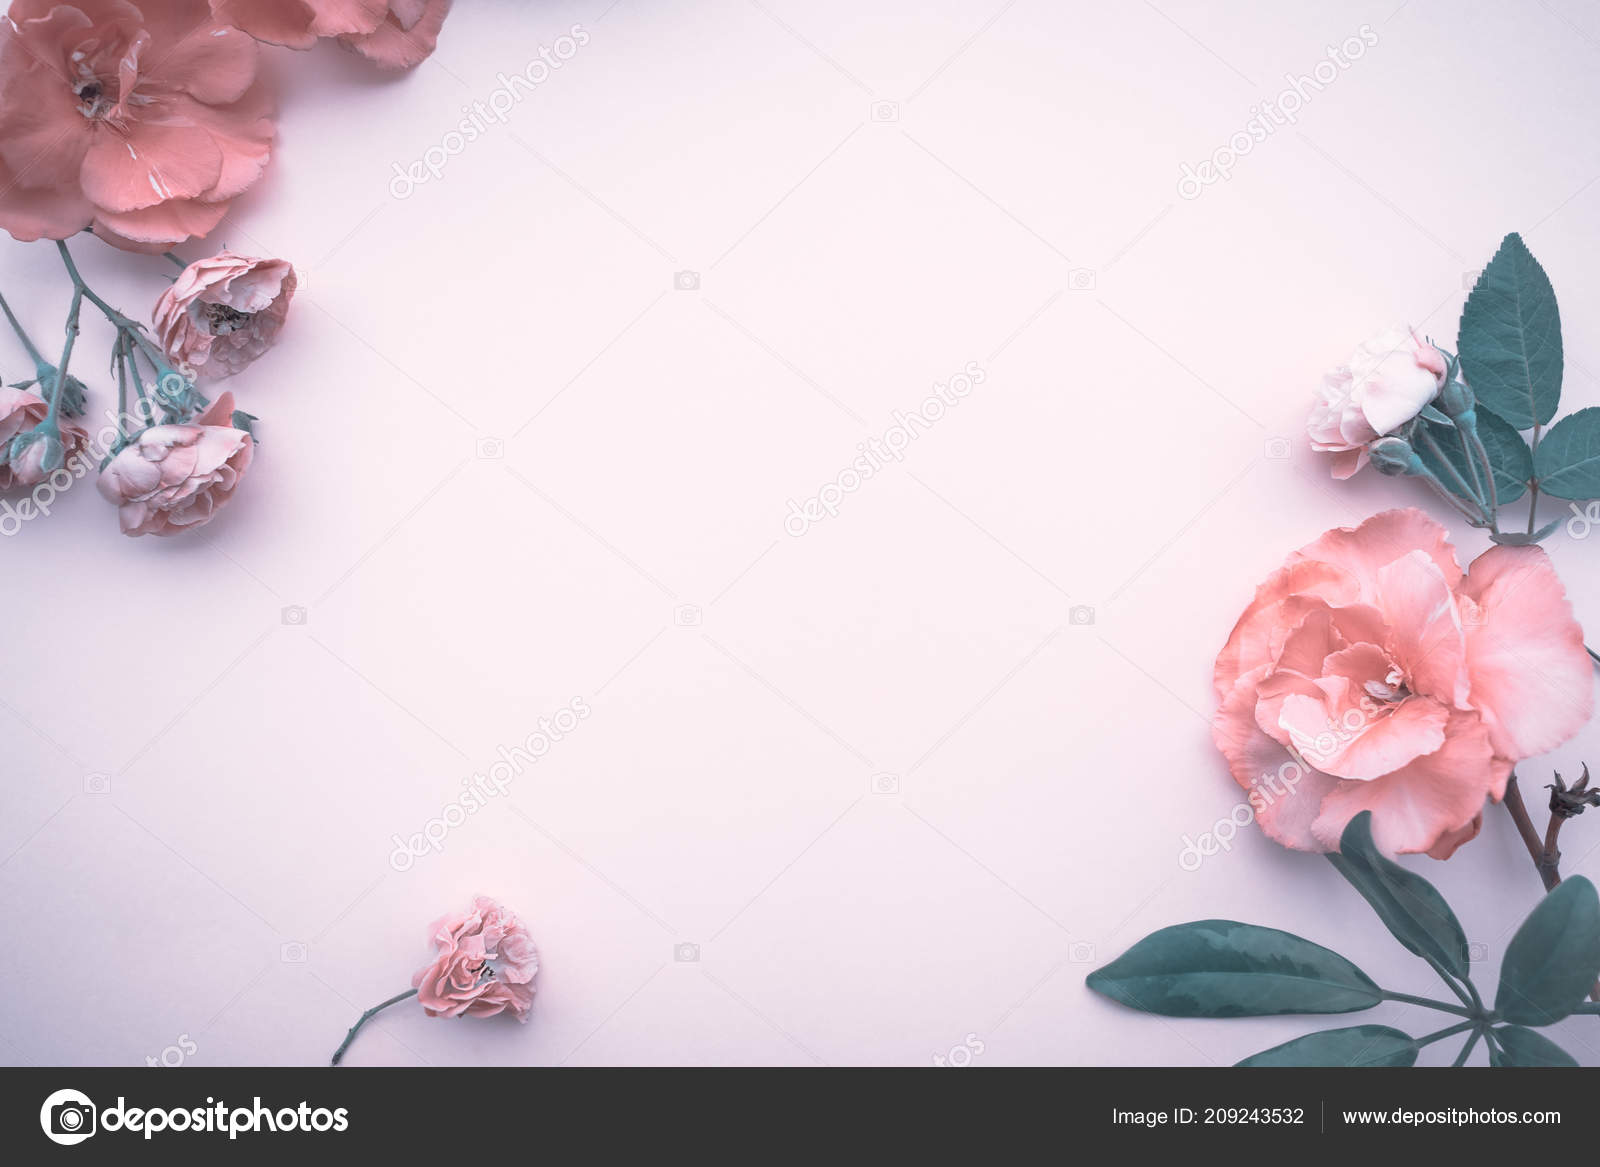 Baby Pink Roses Wallpaper Gentle Floral Border Abstract